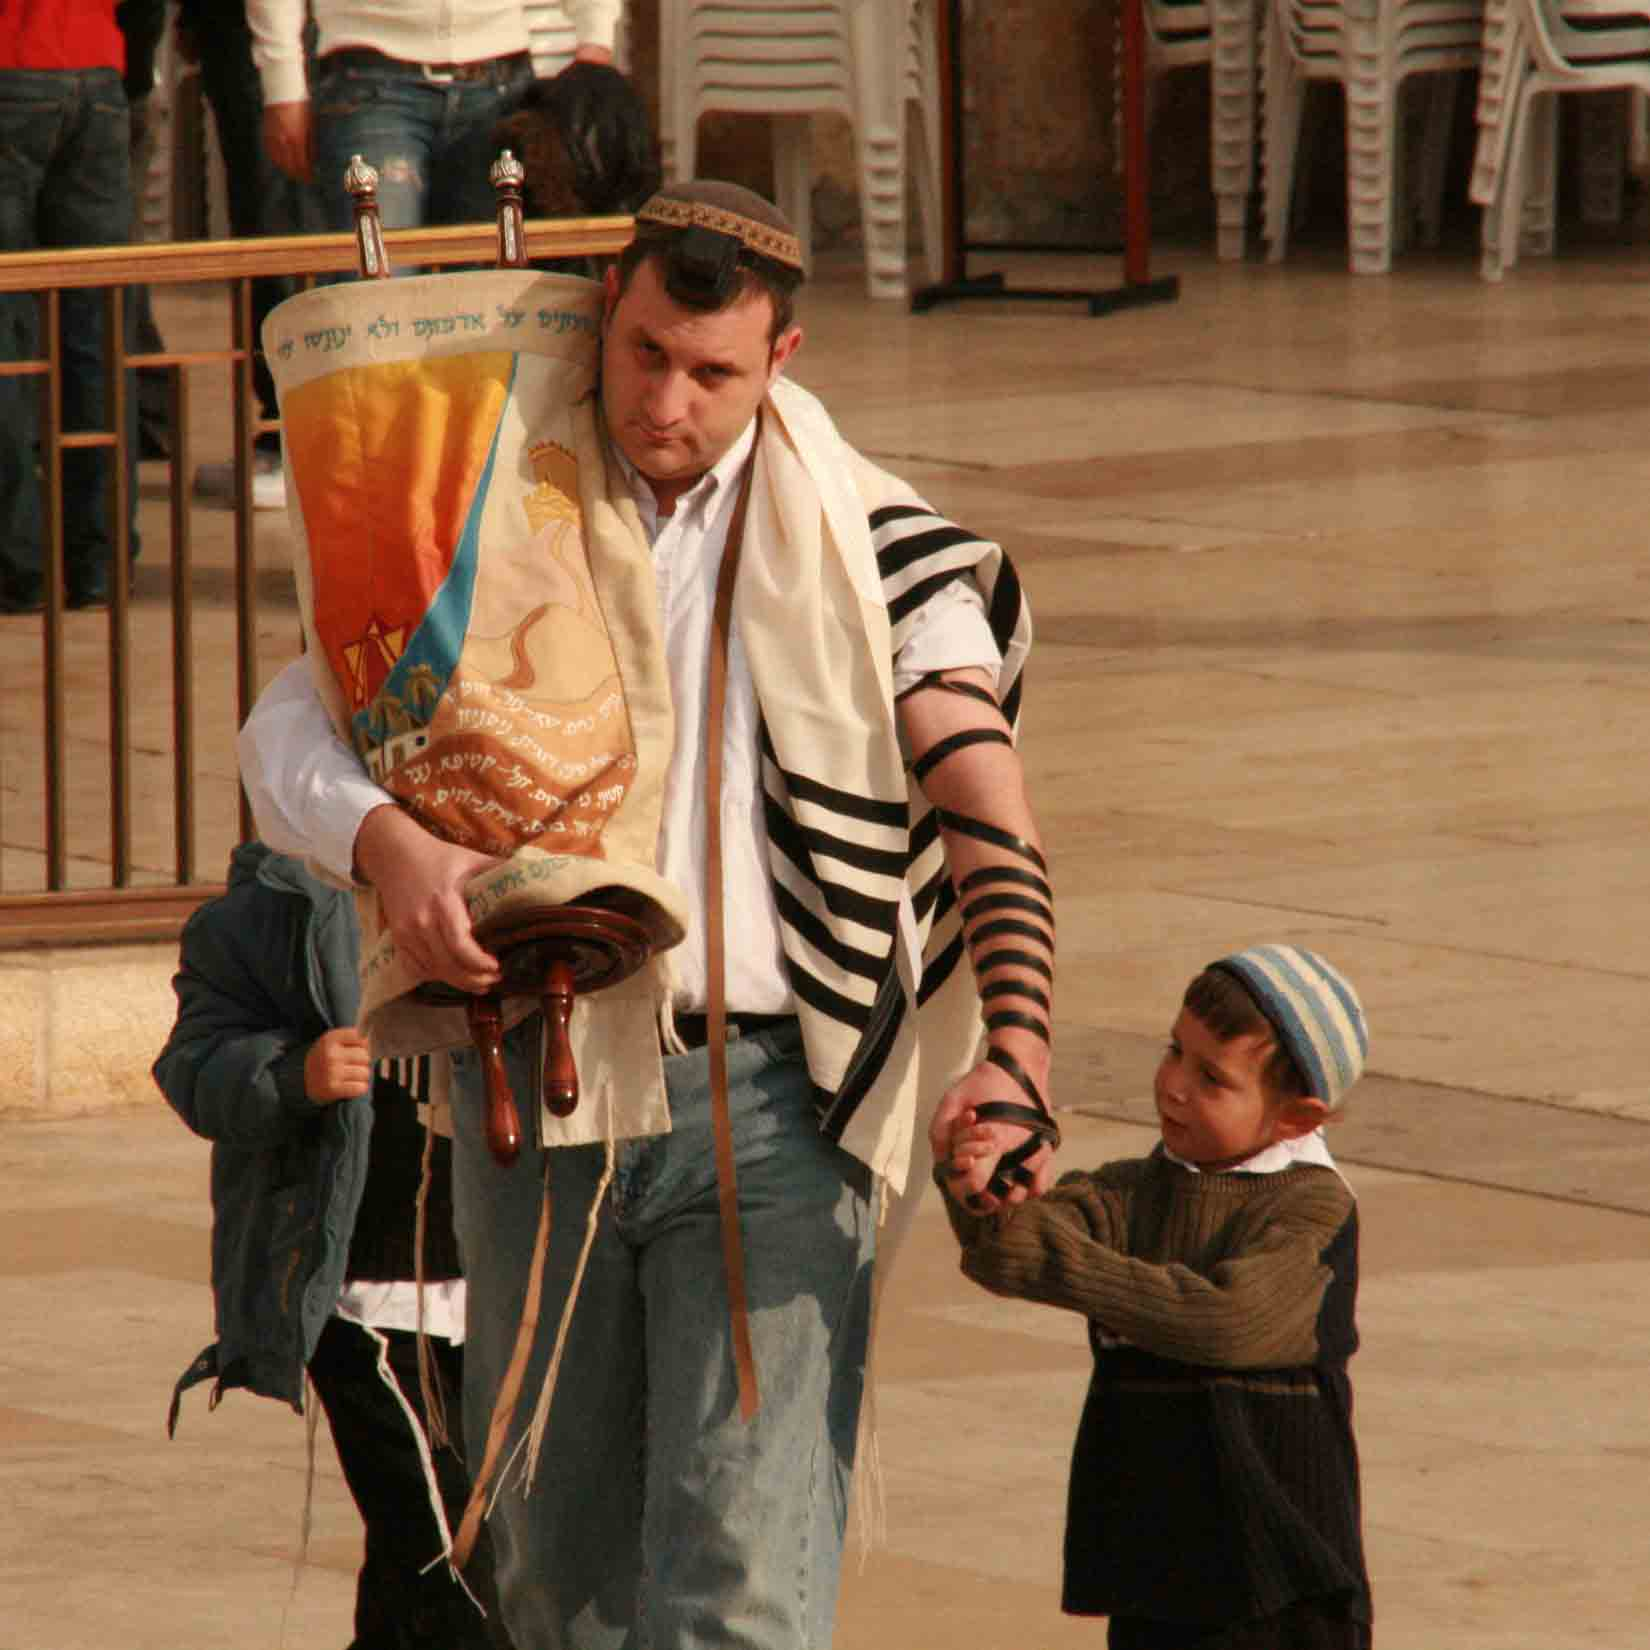 It is common for Orthodox Jews to limit children's education to the Torah and Jewish traditions.